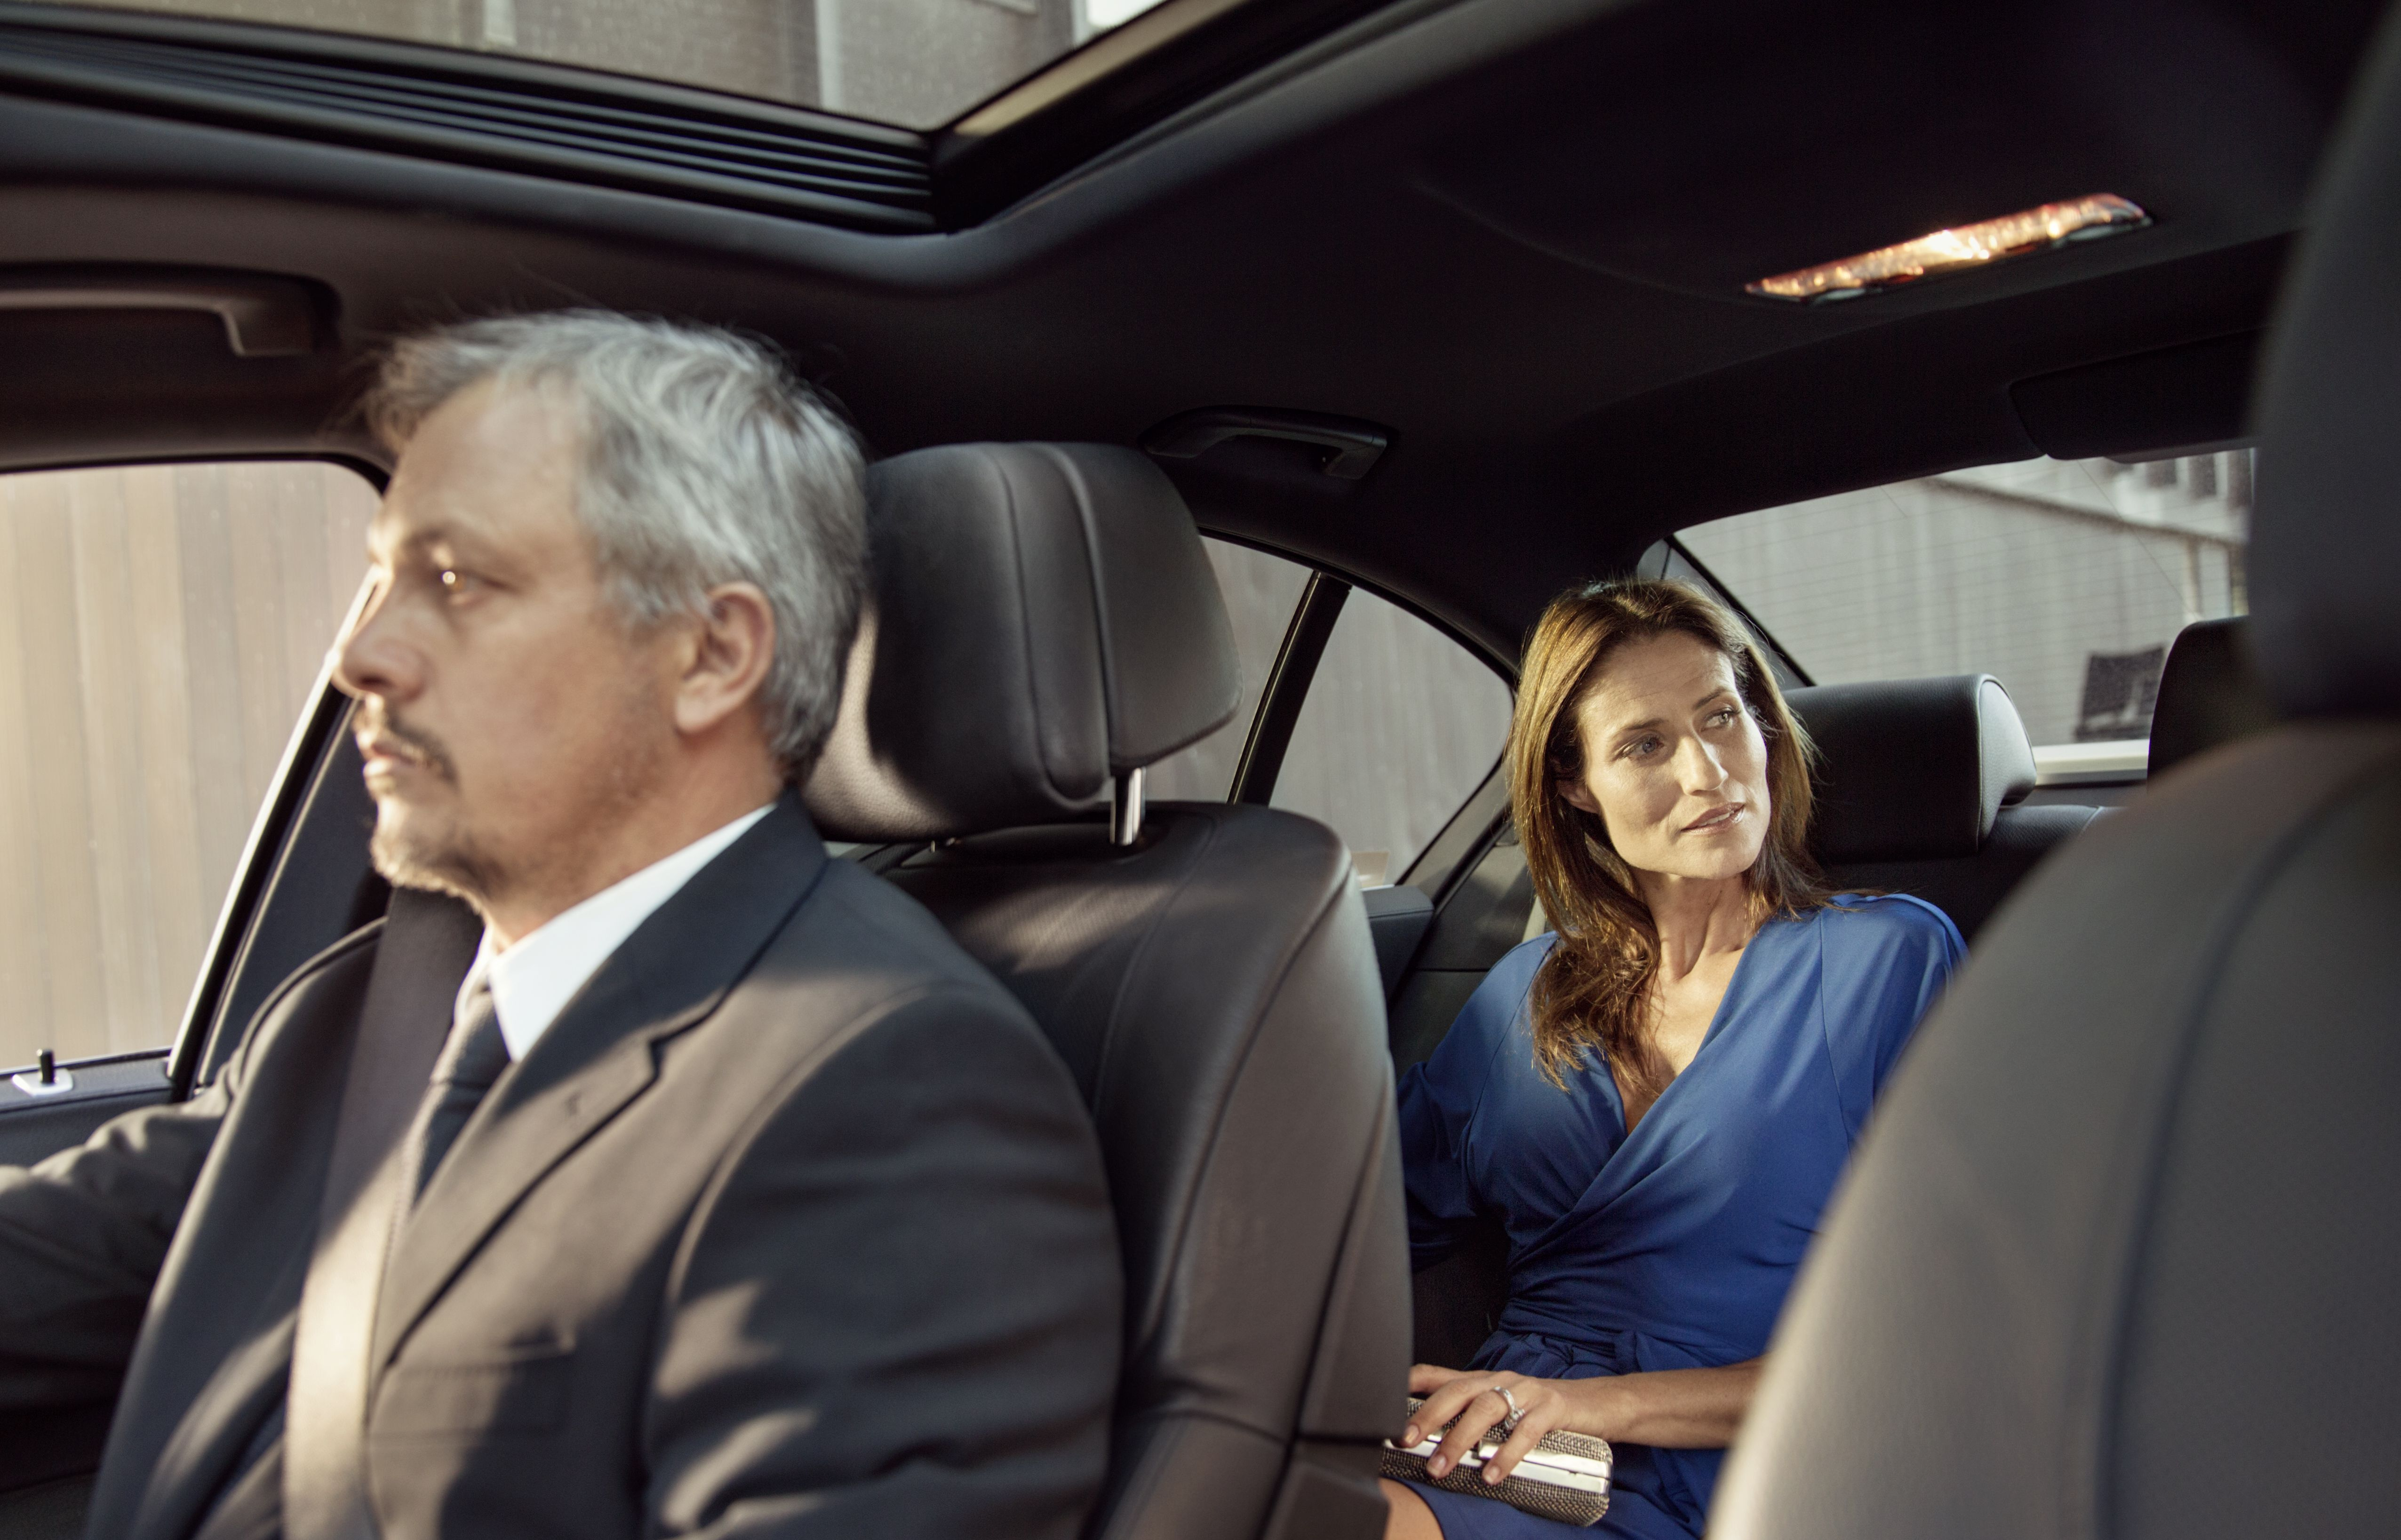 Chauffeur is driving mature woman.